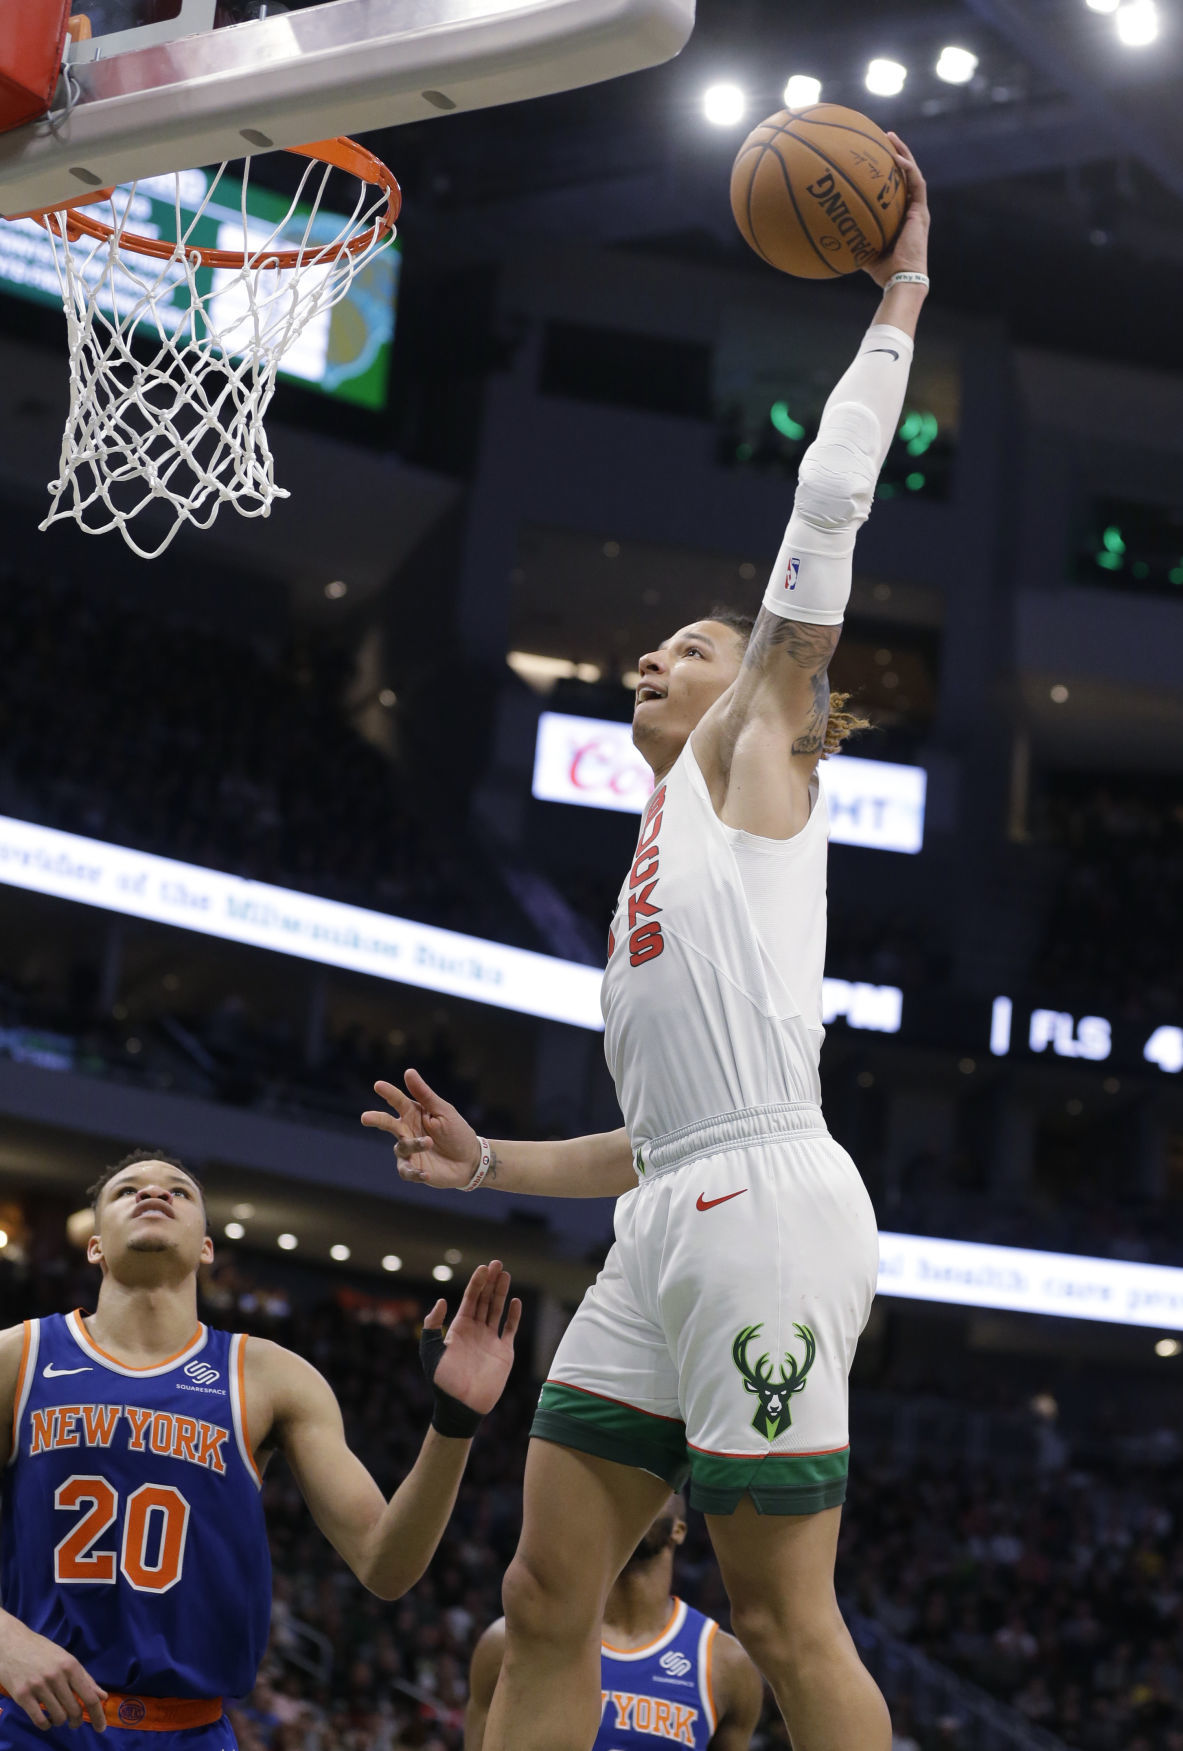 7e1b14c1776 Giannis Antetokounmpo keeps cool, leads home-and-home sweep for ...